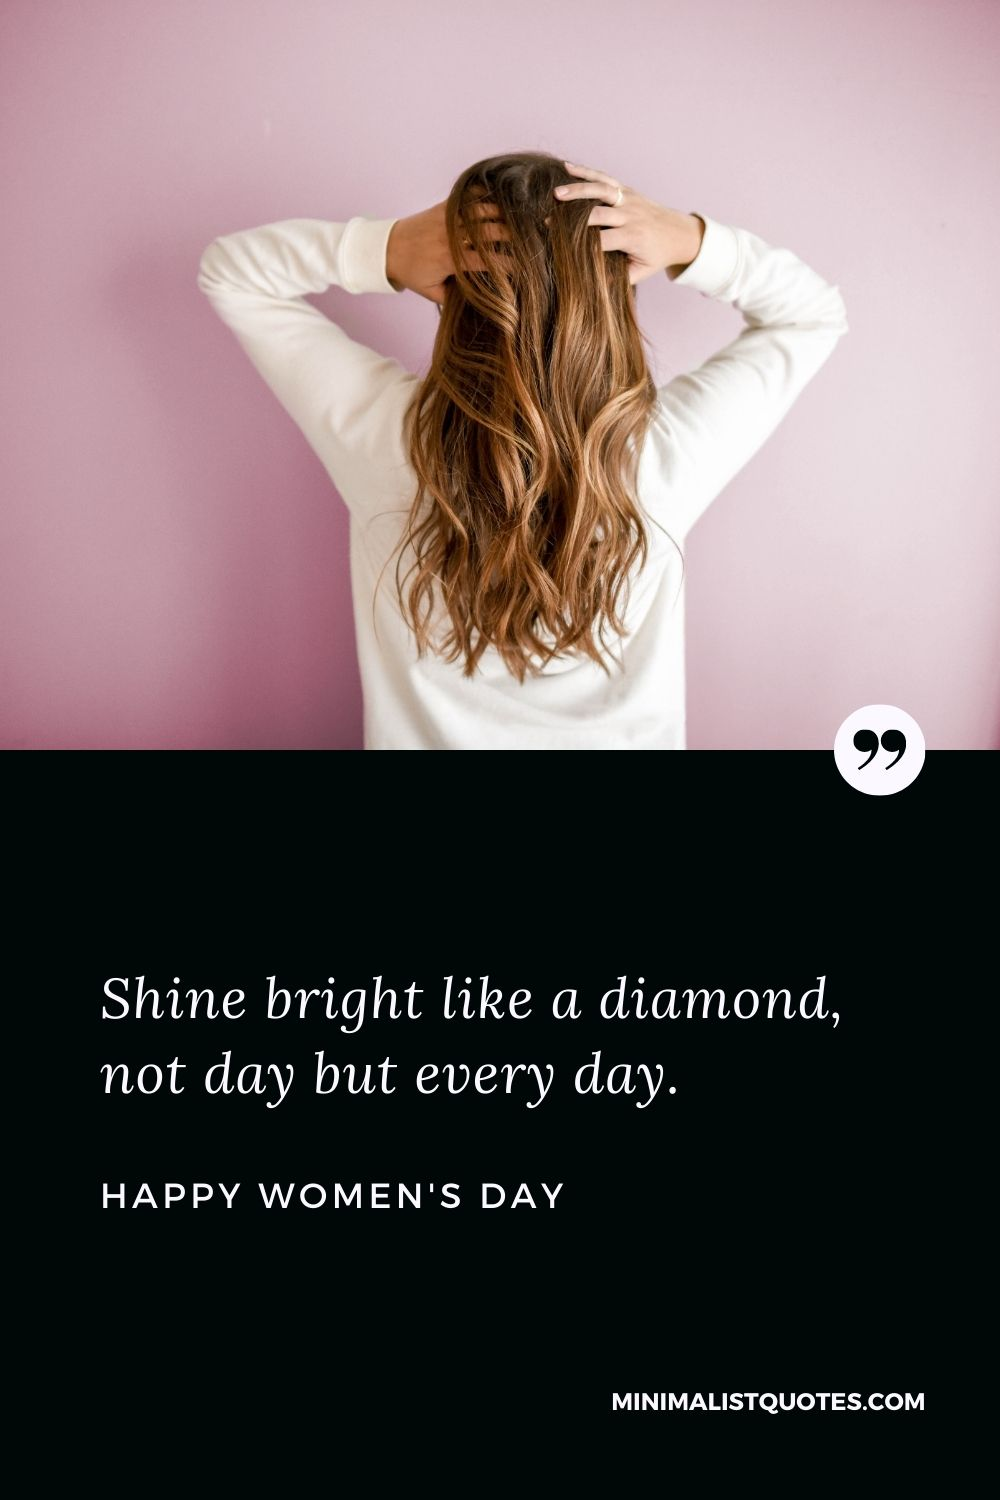 Women's Day Wish & Message With Image: Shine bright like a diamond, not day but every day.